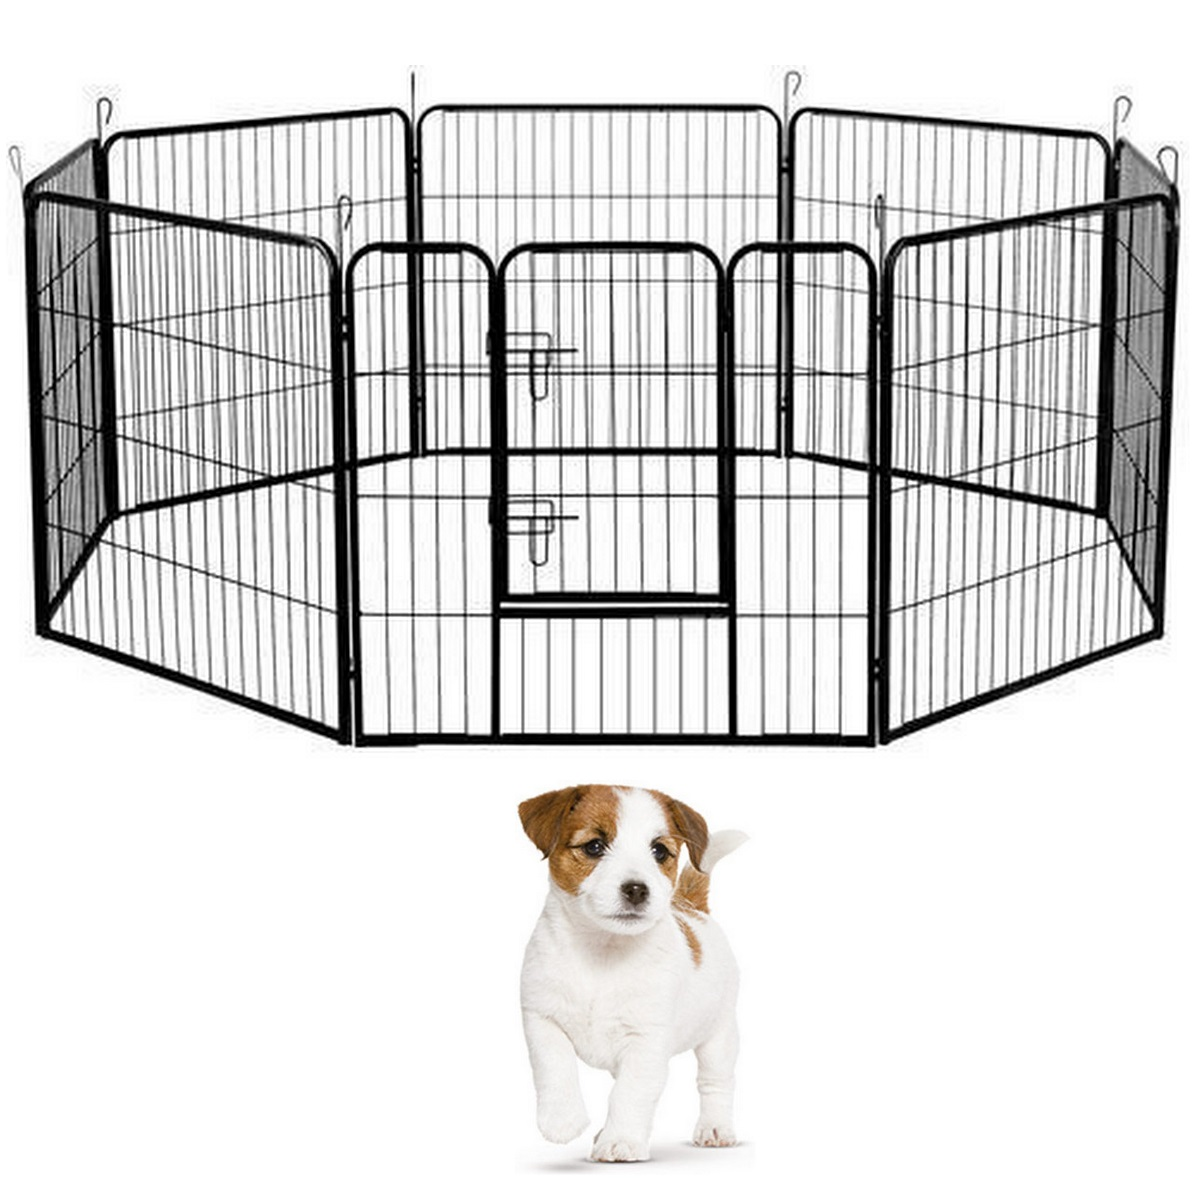 New pet enclosure dog play pen 8 panel puppy large fence for Dog fence enclosure